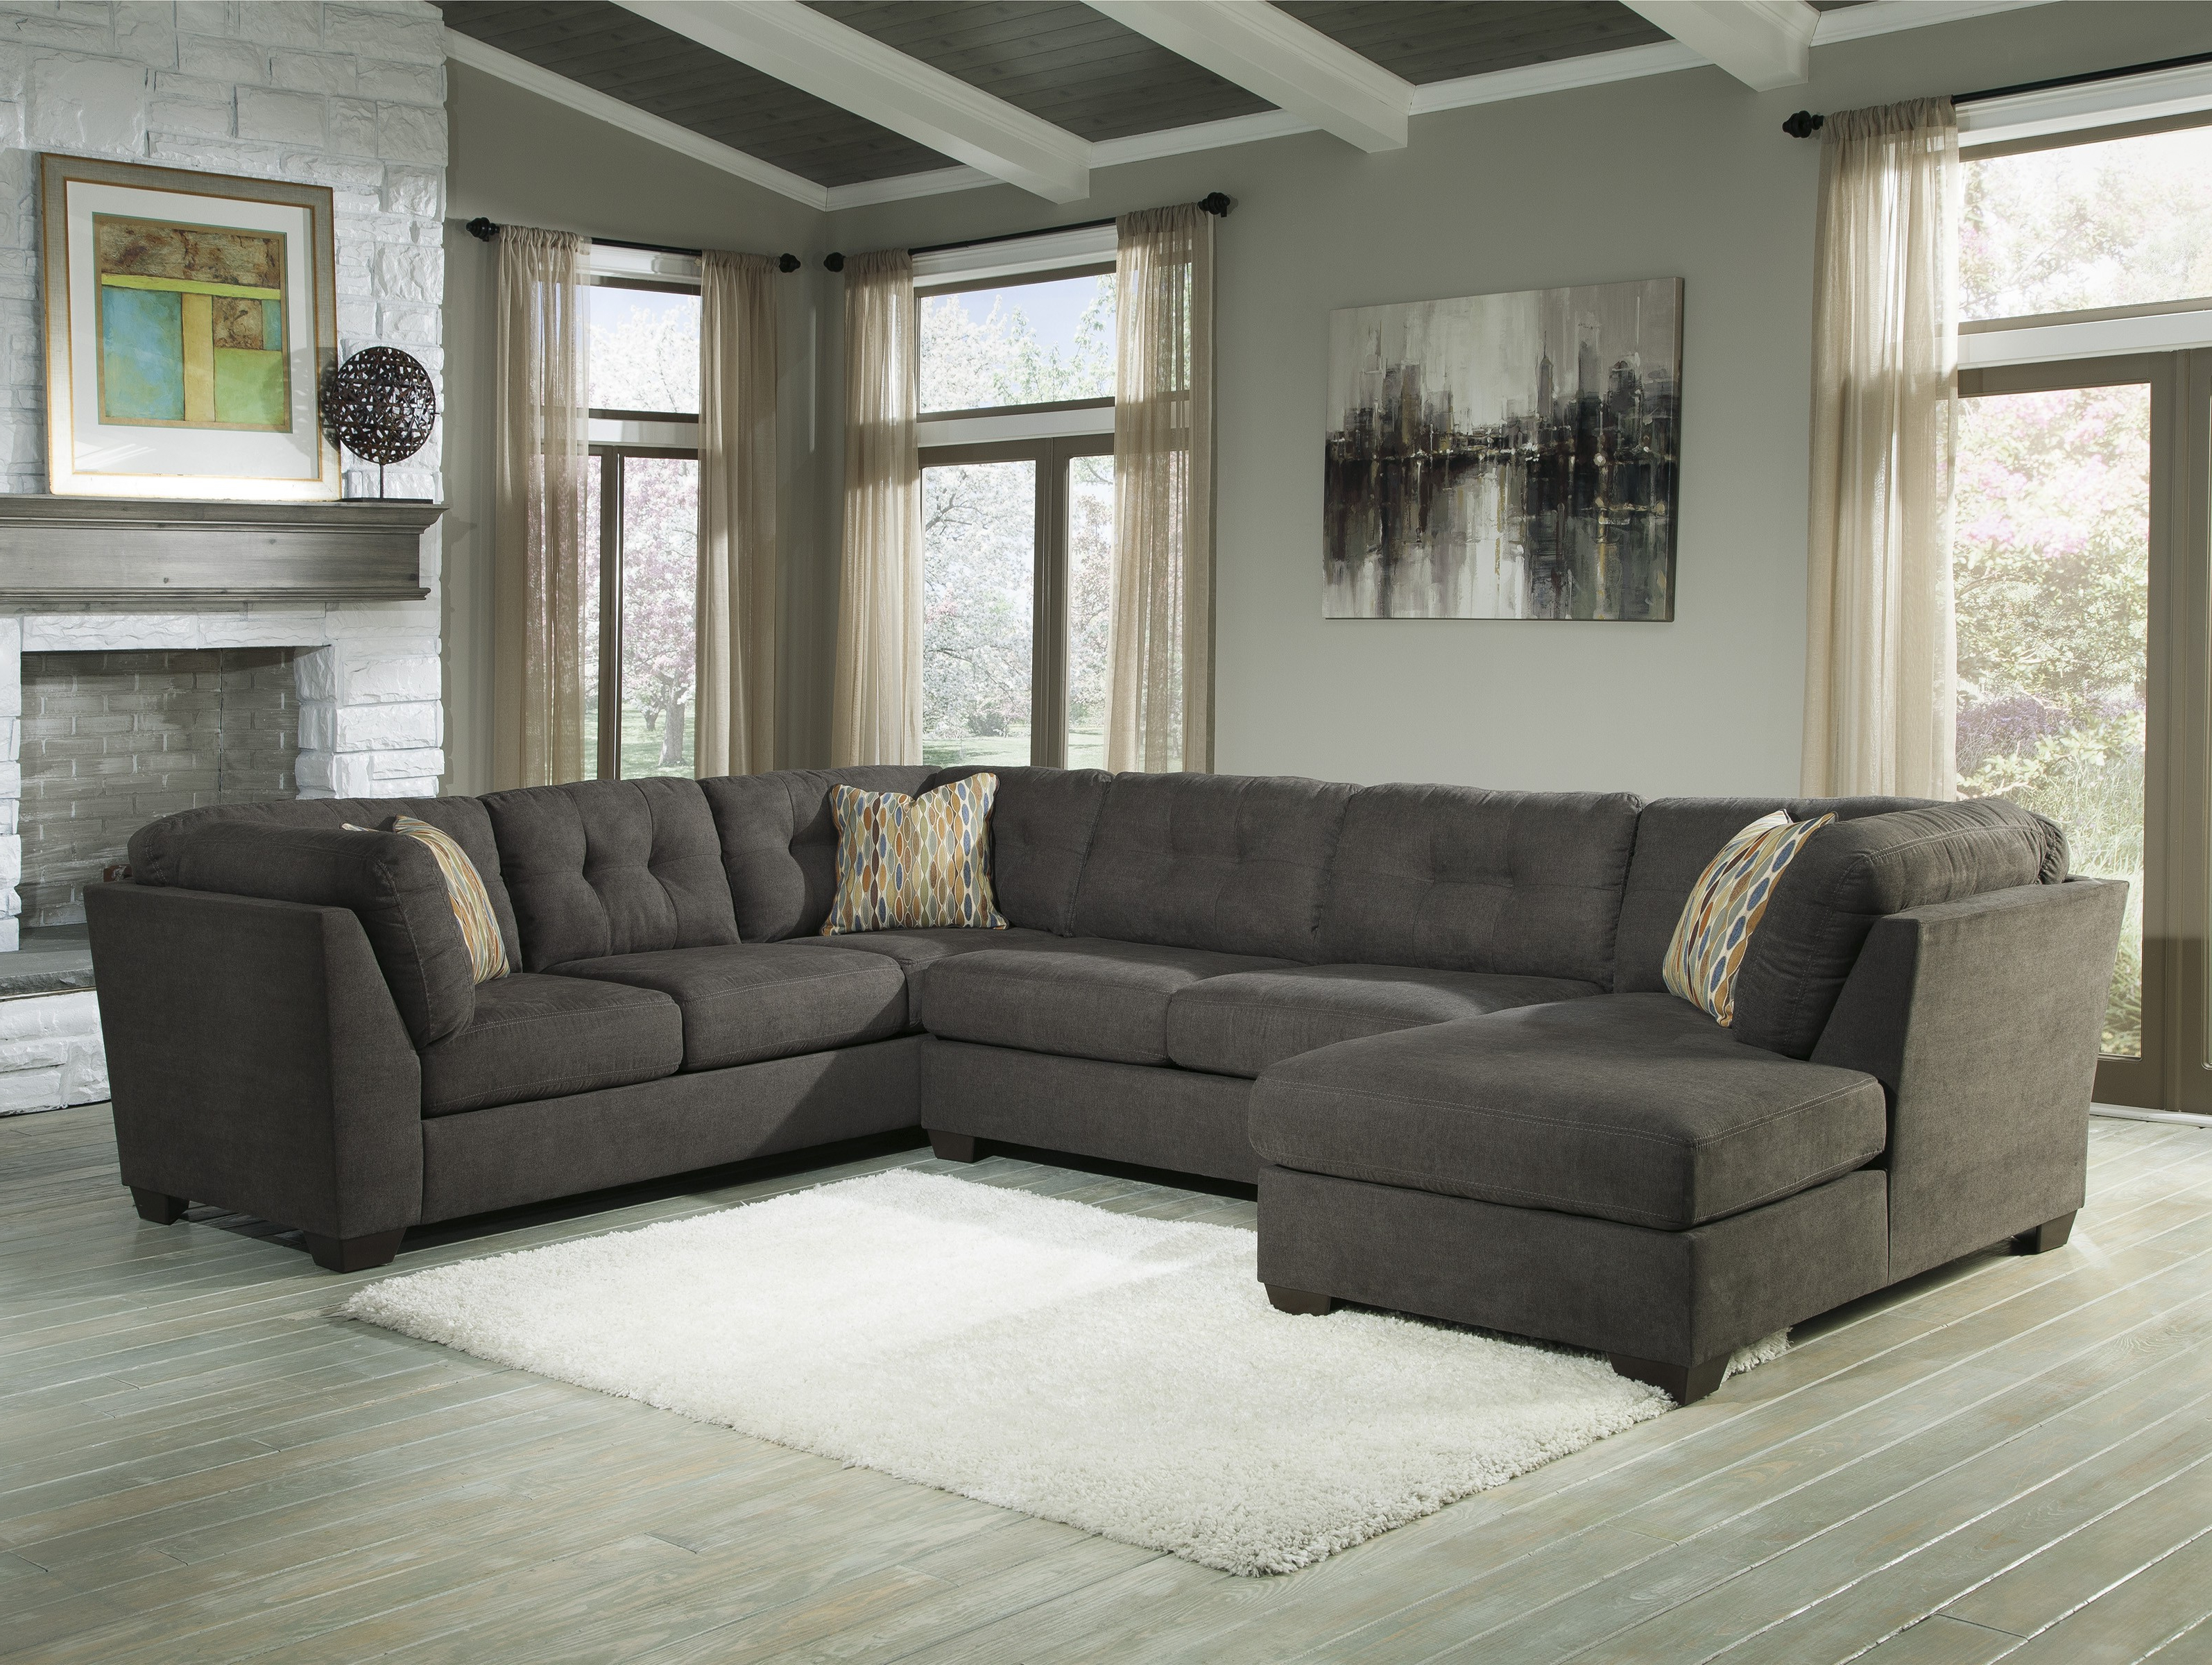 Best And Newest Avery 2 Piece Sectionals With Raf Armless Chaise Throughout Armless Sectional Sofa With Chaise (View 13 of 20)